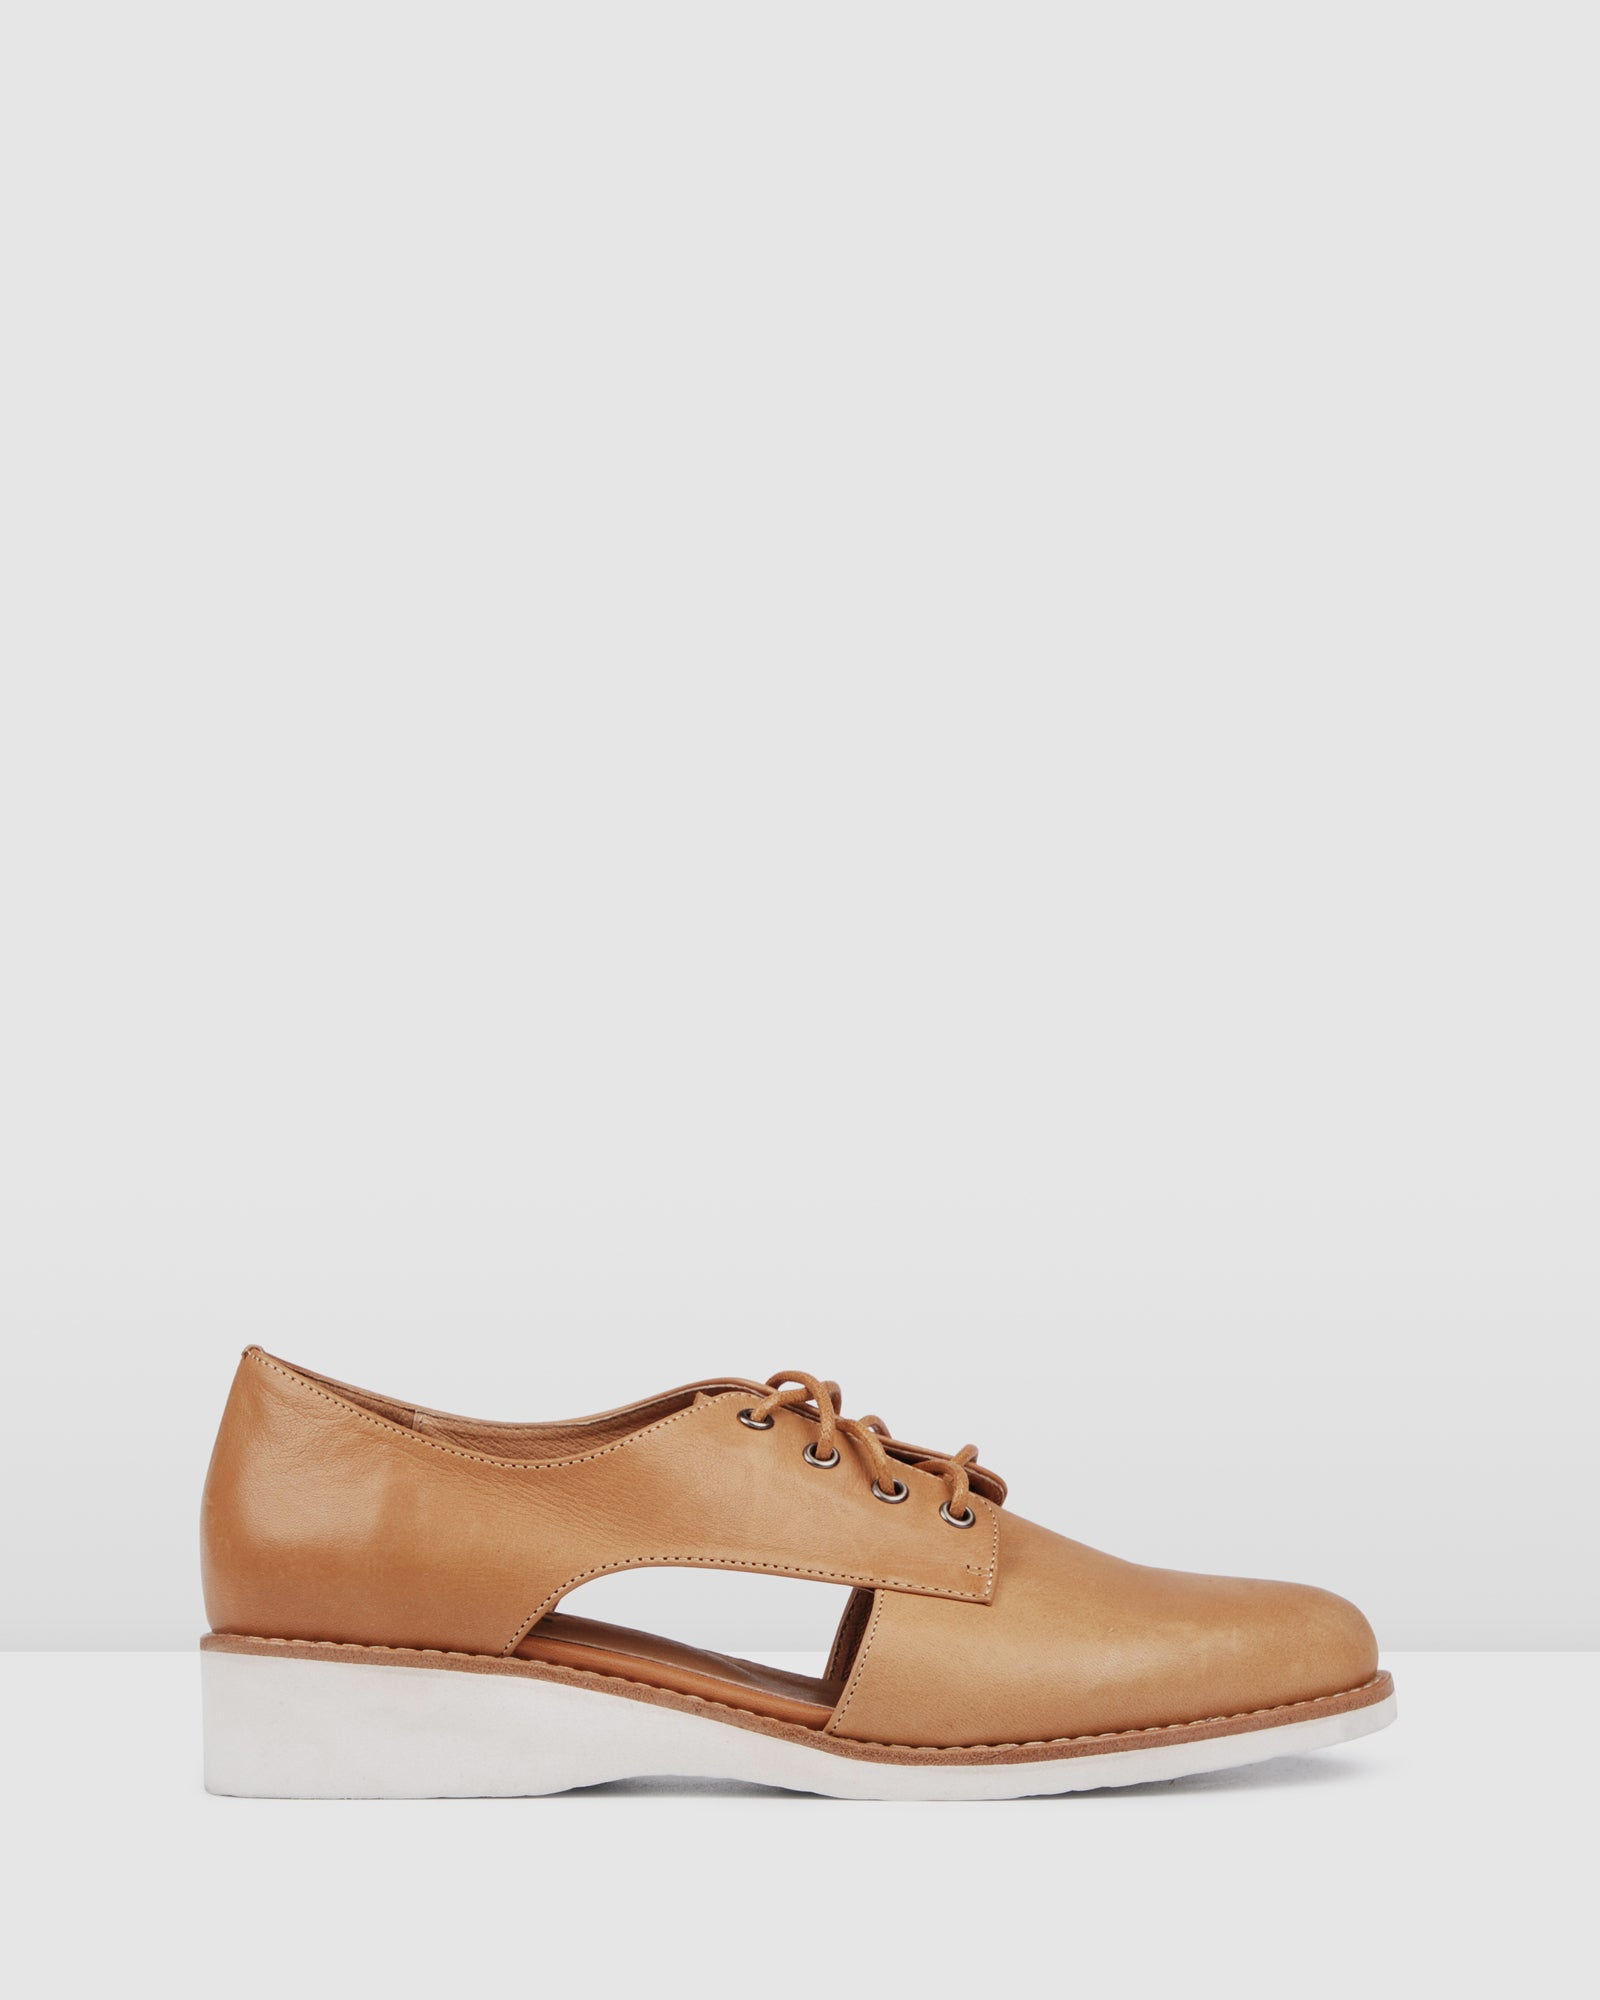 NOVA LACE UPS TAN LEATHER